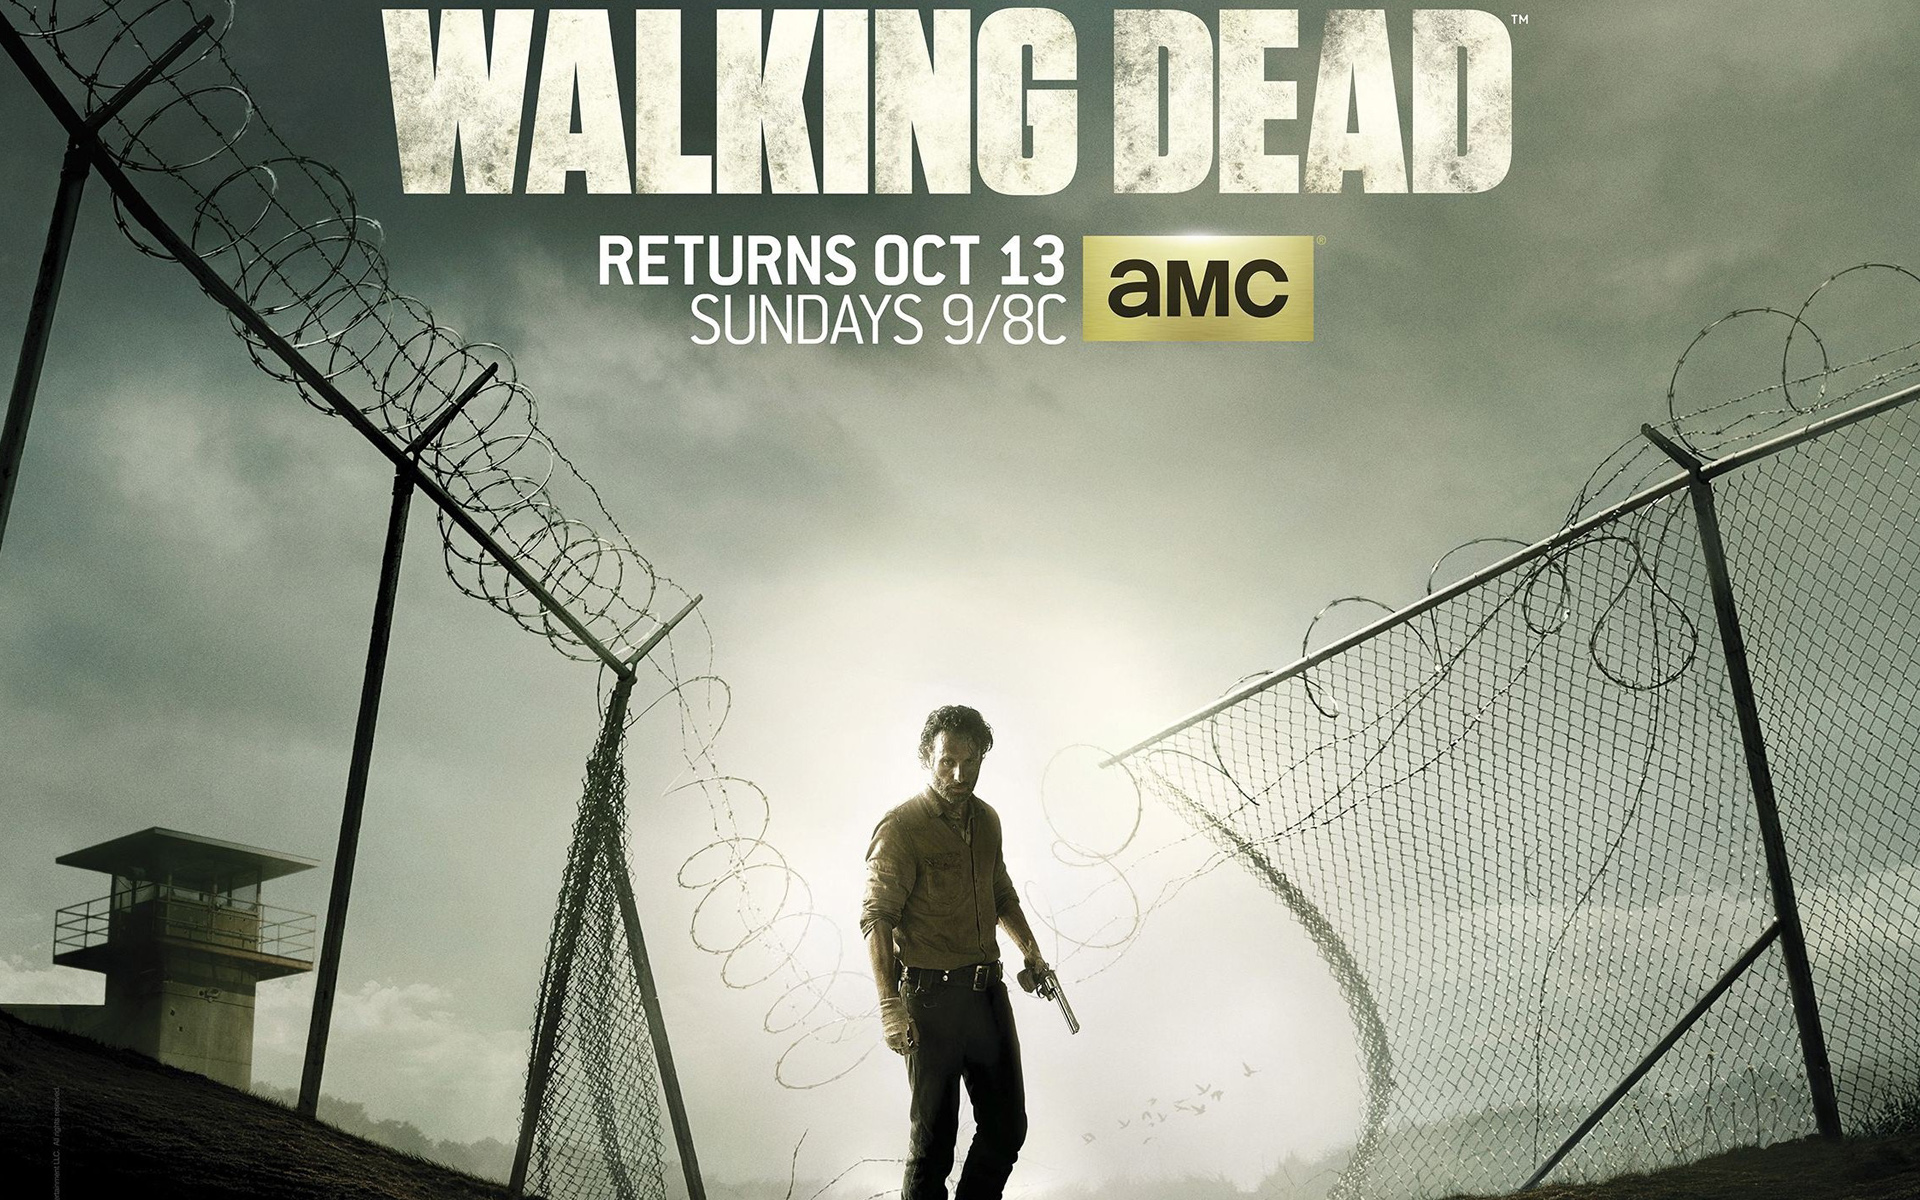 The Walking Dead Season 4 1763.19 Kb